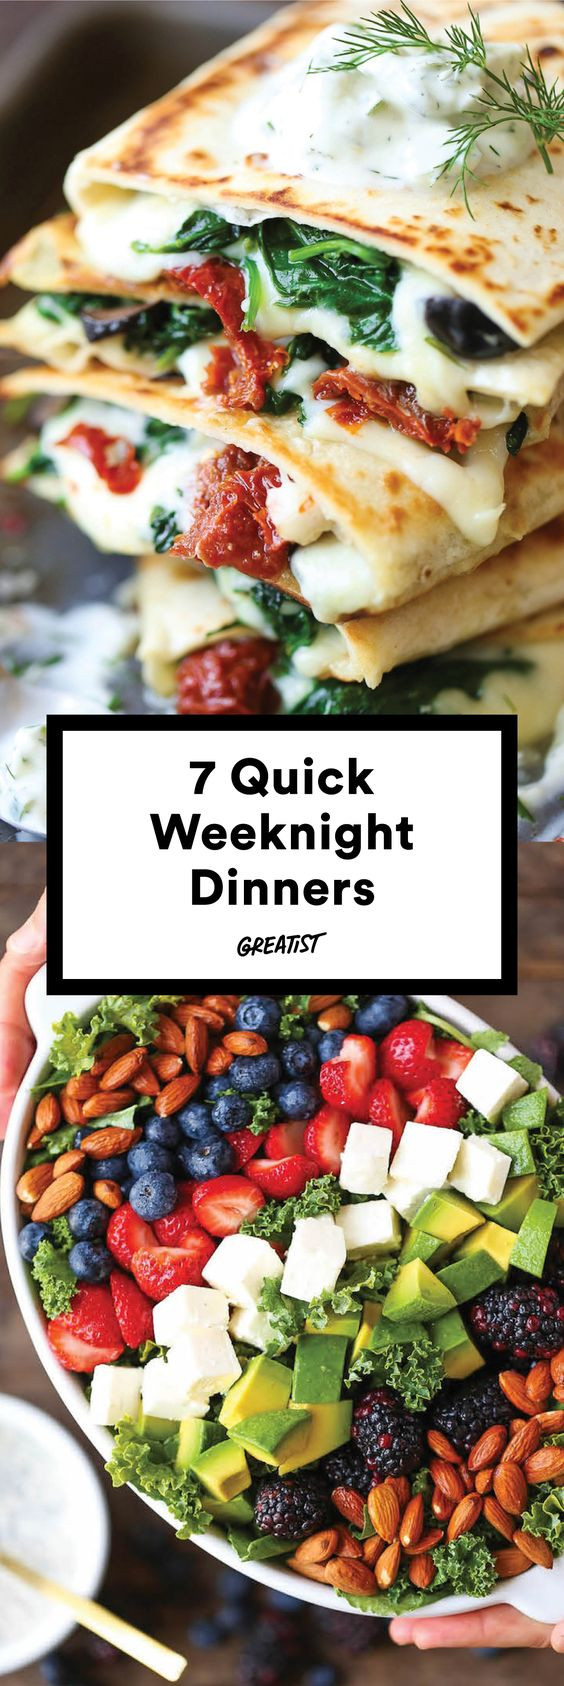 Healthy Weeknight Dinners For Two  7 Quick Fix Dinners That Make Weeknight Cooking a Cinch